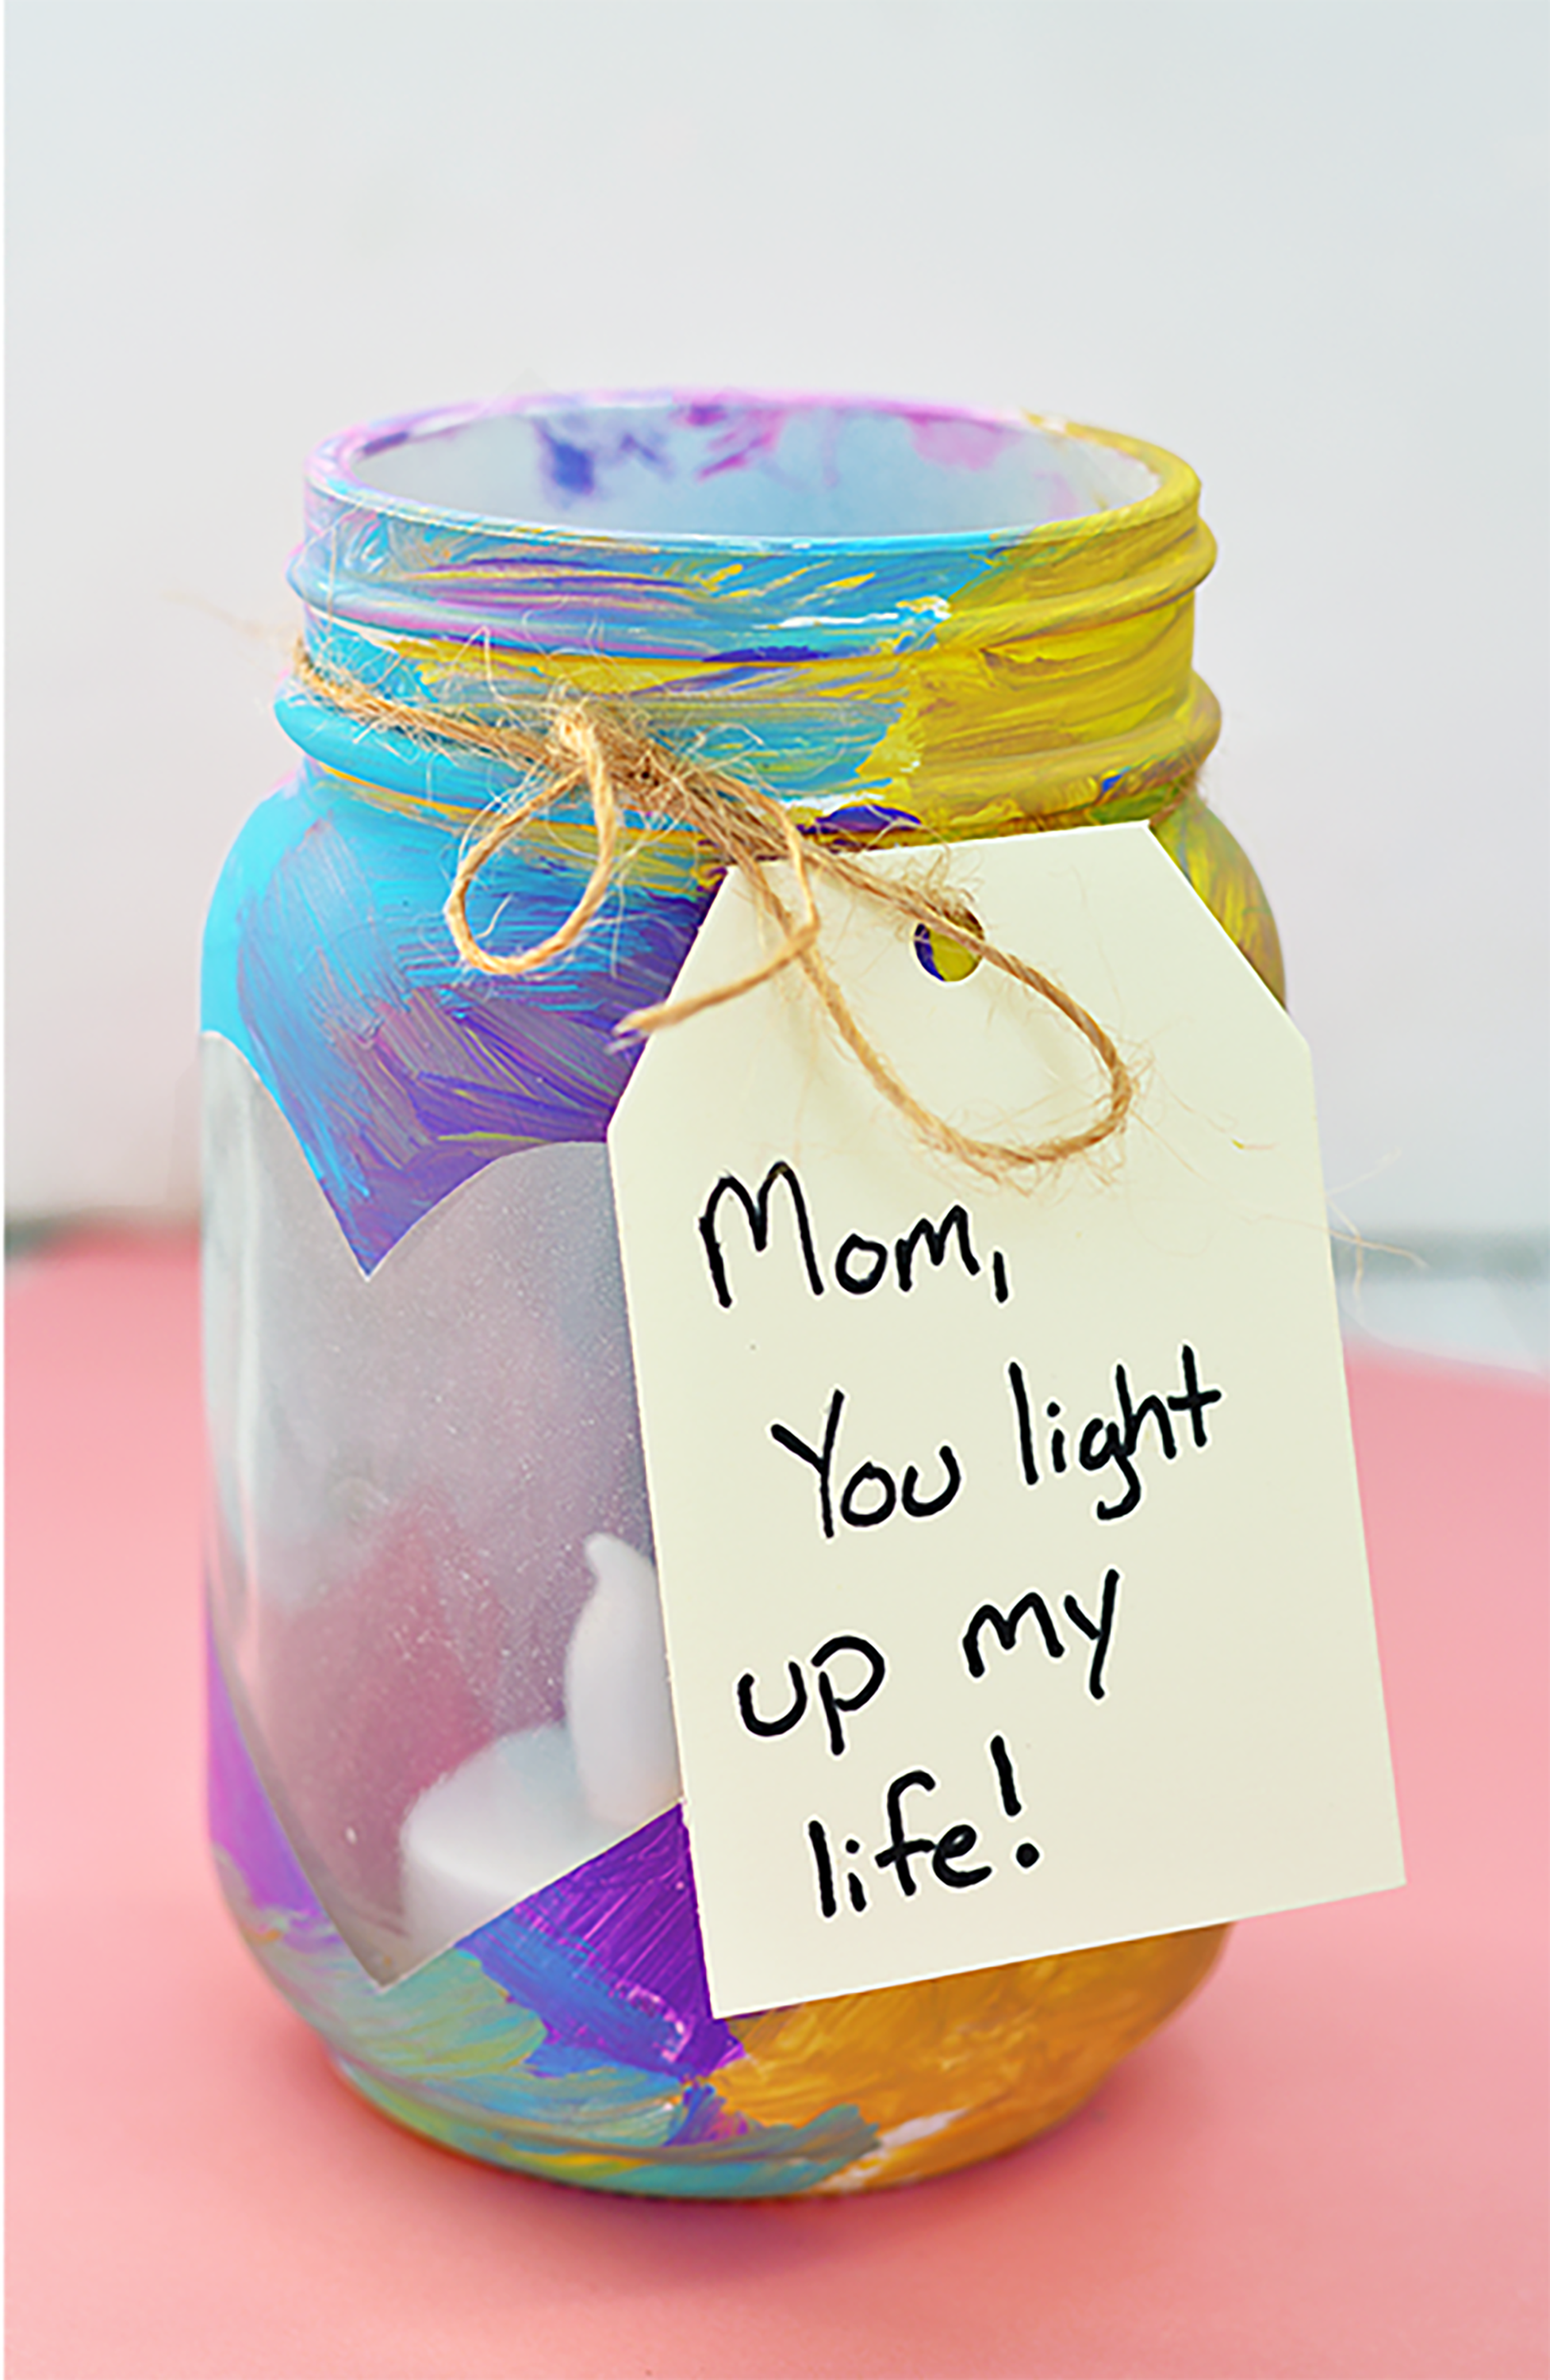 34 Mother\'s Day Crafts - DIY Ideas for Mother\'s Day Gifts Kids Can Make